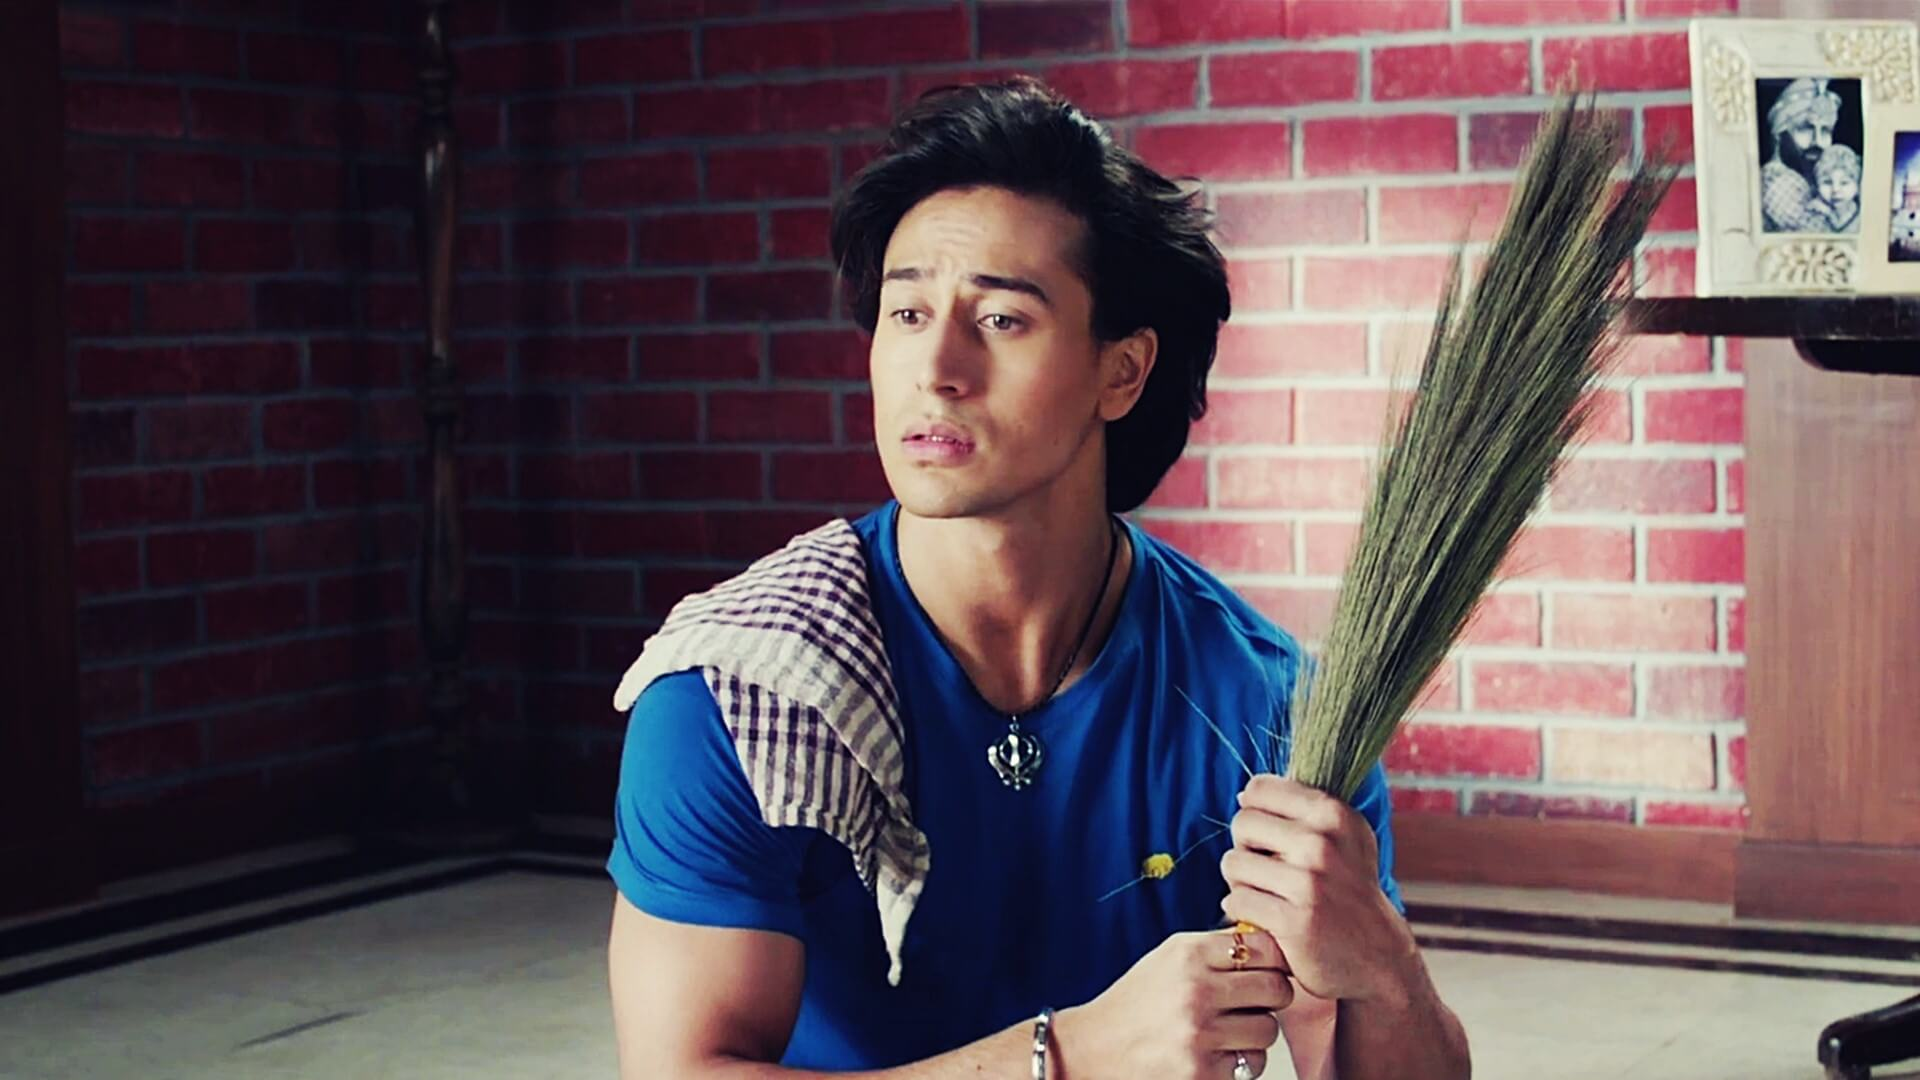 Tiger Shroff Age, Photos(image), Song, Movie, Height, Girlfriend, Sister, Date Of Birth, Net Worth, Biography, Education, Awards, Instagram, Twitter, Facebook, Wiki, Imdb, Youtube (78)